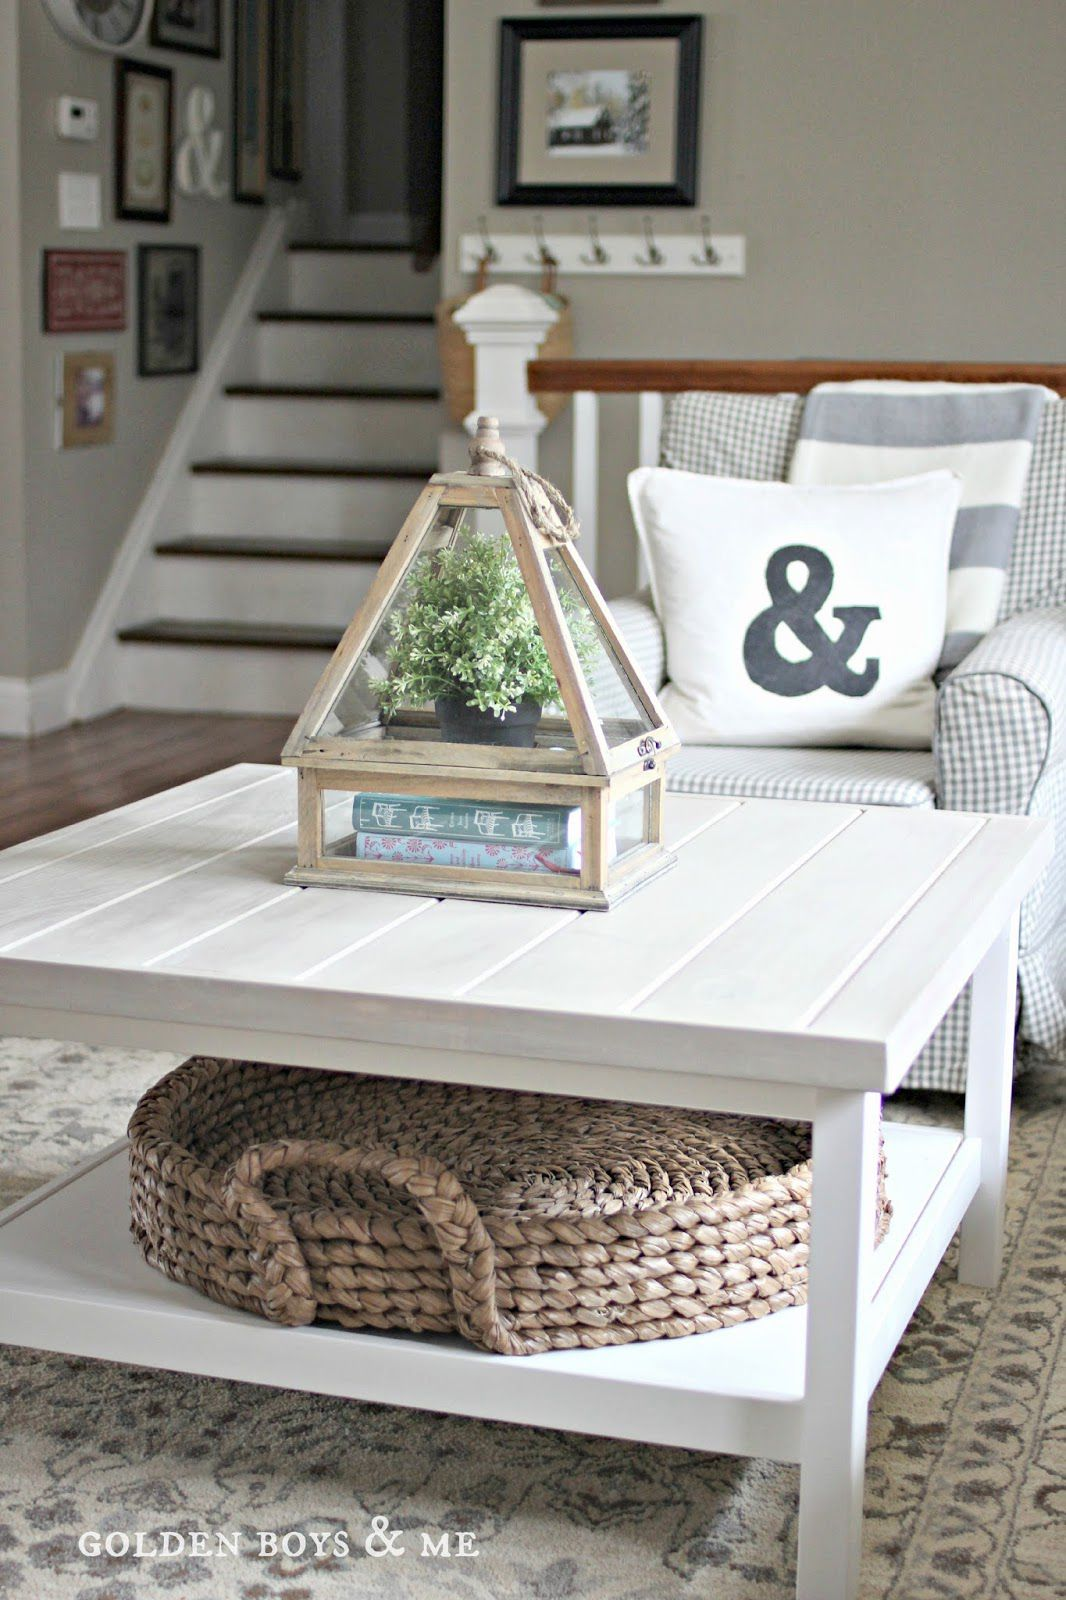 coffee table decorating ideas how style your centerpiece accents beach umbrella marble top nightstand vintage brass glass black half moon console small telephone stand metal legs